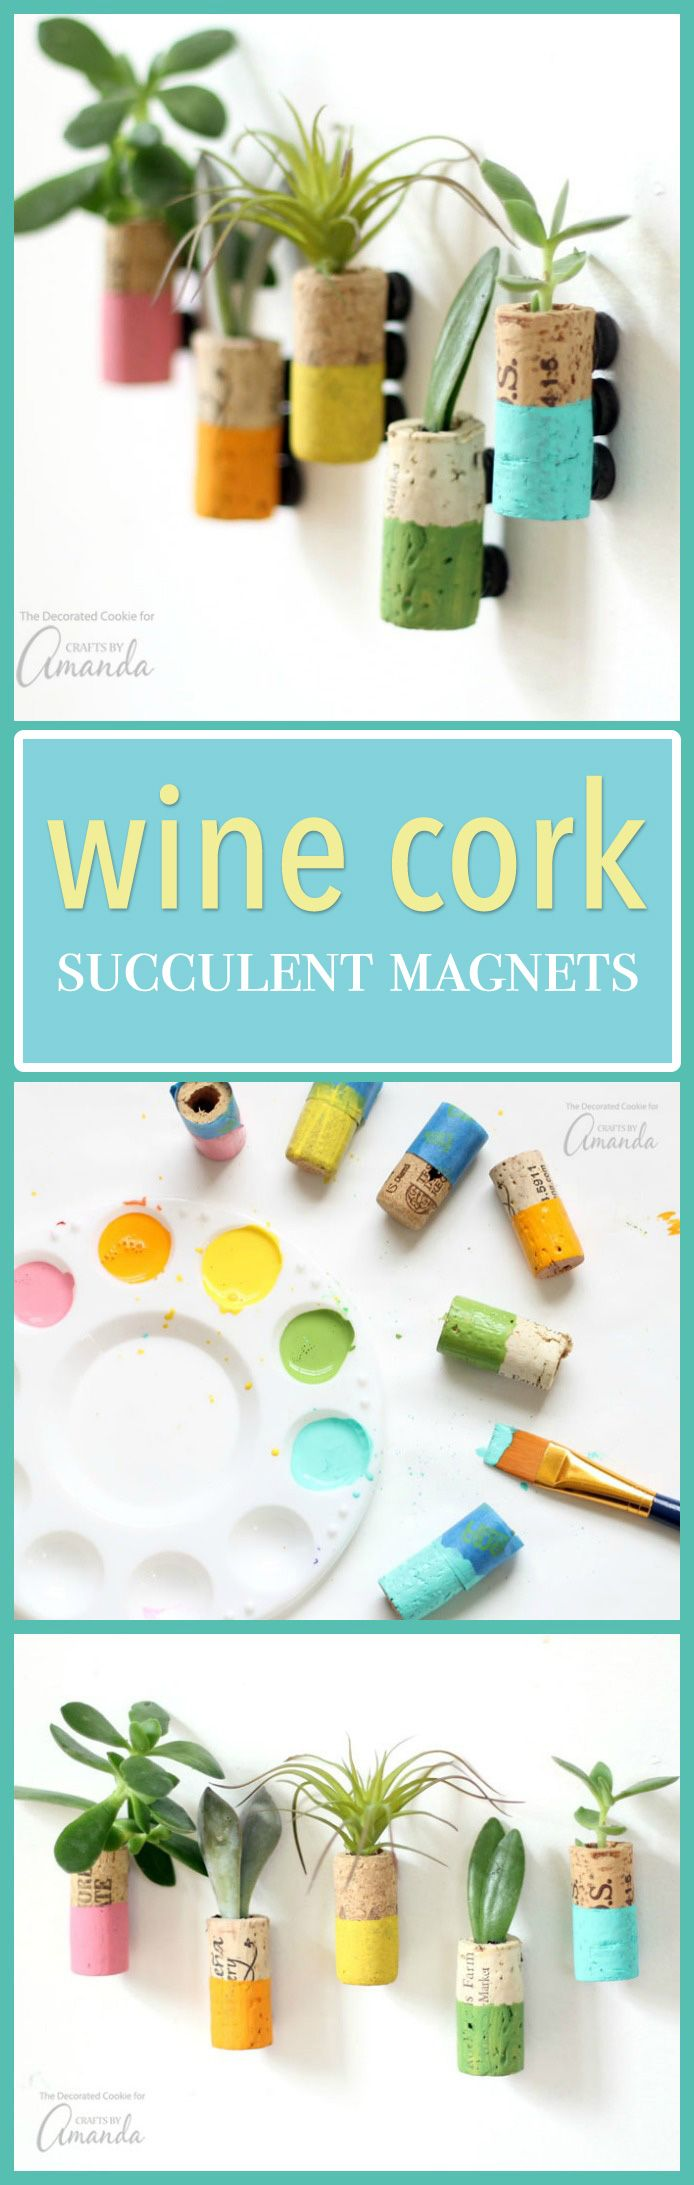 Buy magnets for crafts - These Wine Cork Succulent Magnets Are Colorful Magnets Made From Recycled Wine Corks These Pretty